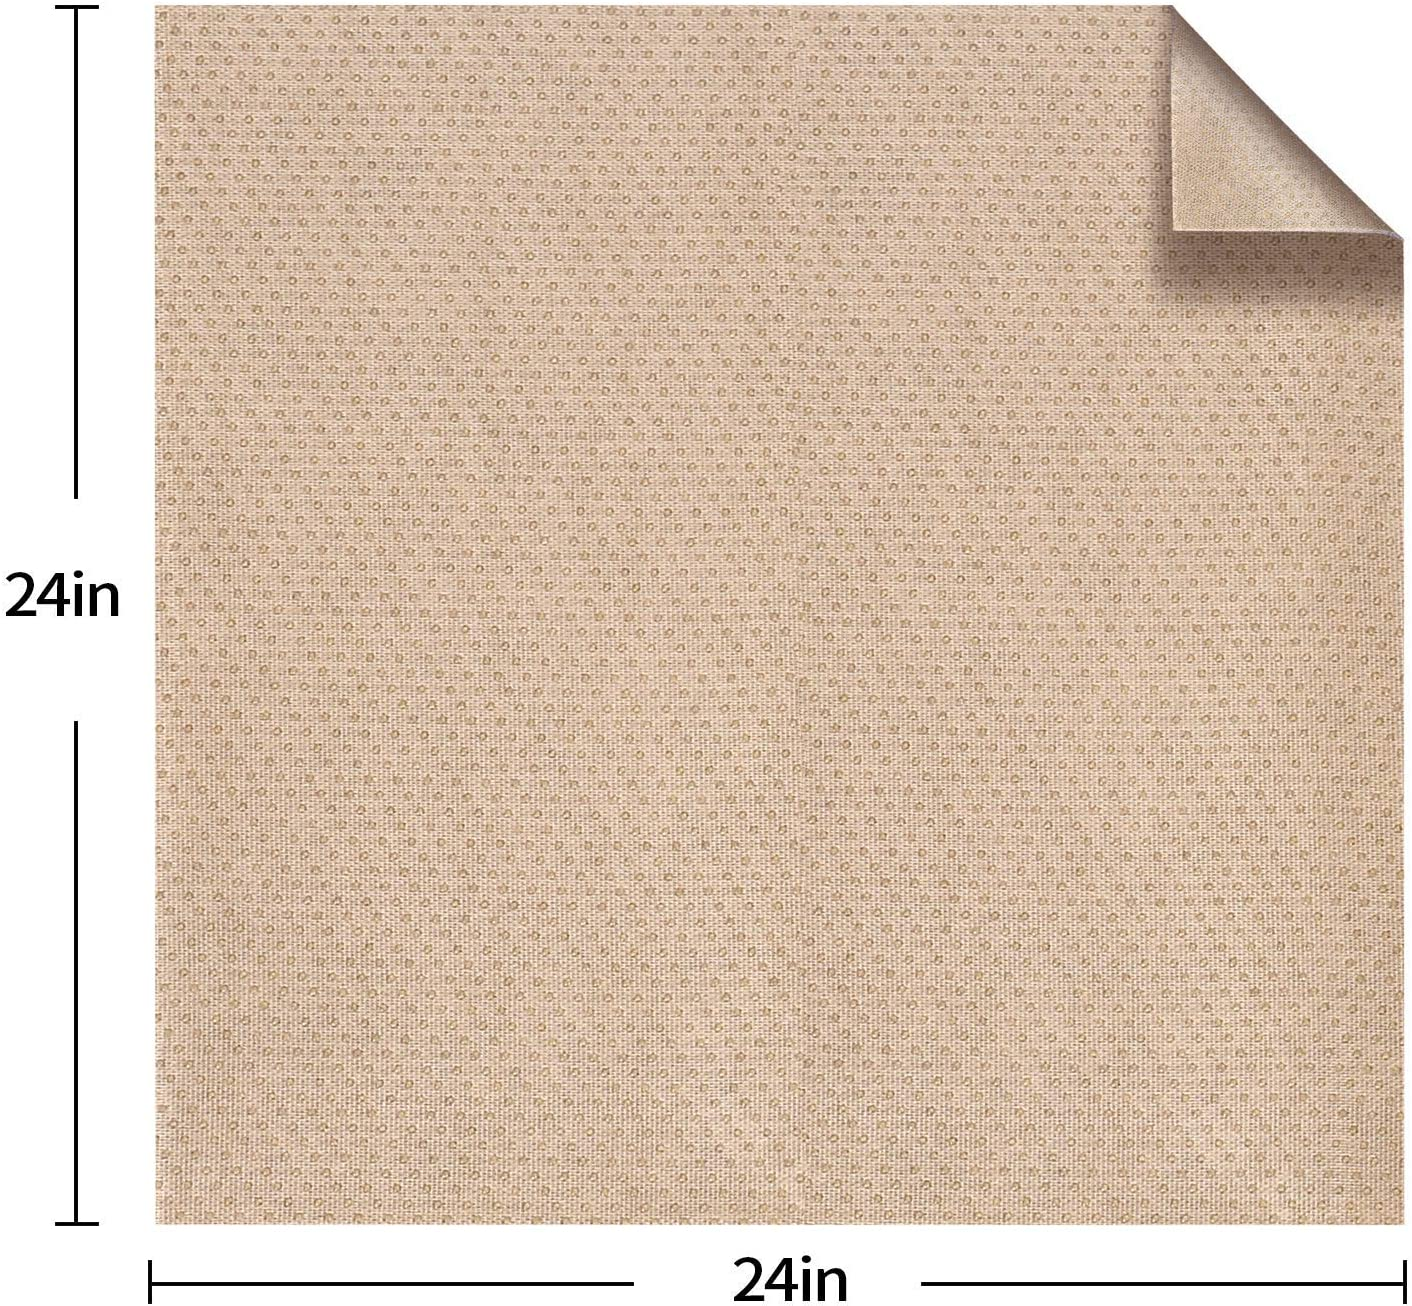 Felt in The Middle 24 x 24in BLS Non-Slip Cushion Underlay Couch Underlay Pad 3 Pack Keep Your Cushions Stay in The Place for Sofa Upgraded Double Sided Anti-Slip Silicone